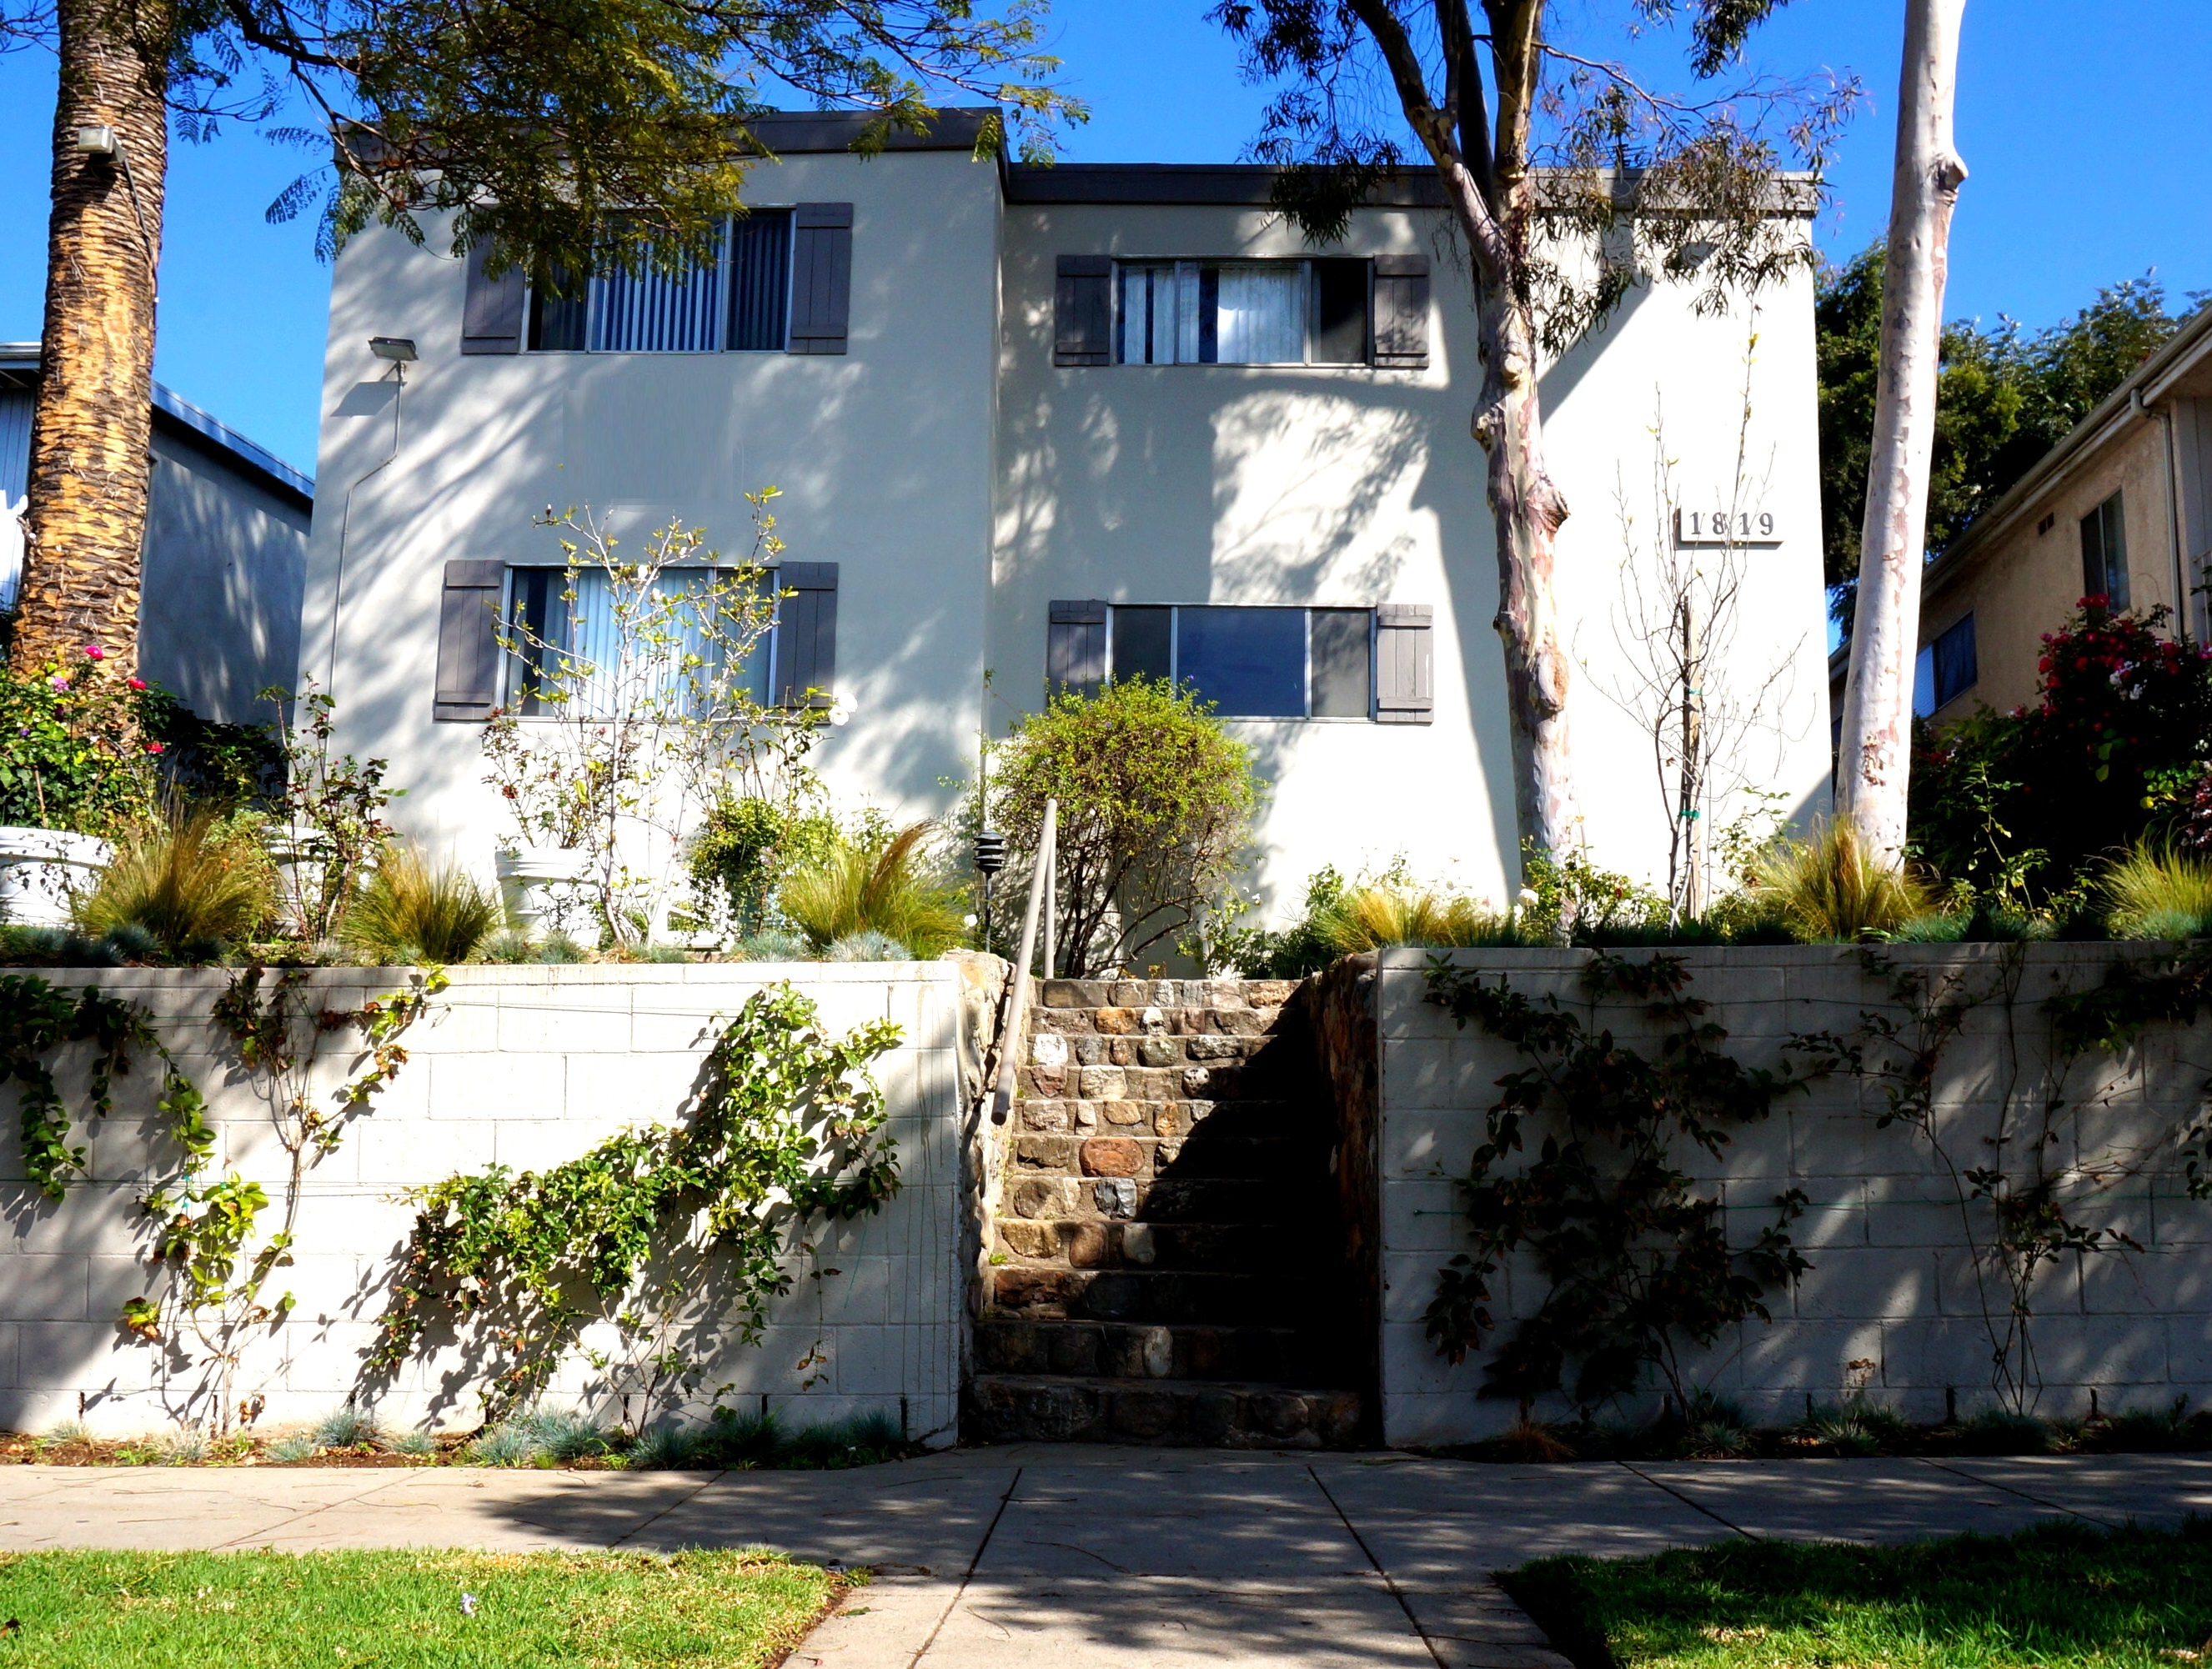 1819 12th St., Santa Monica, CA 90404